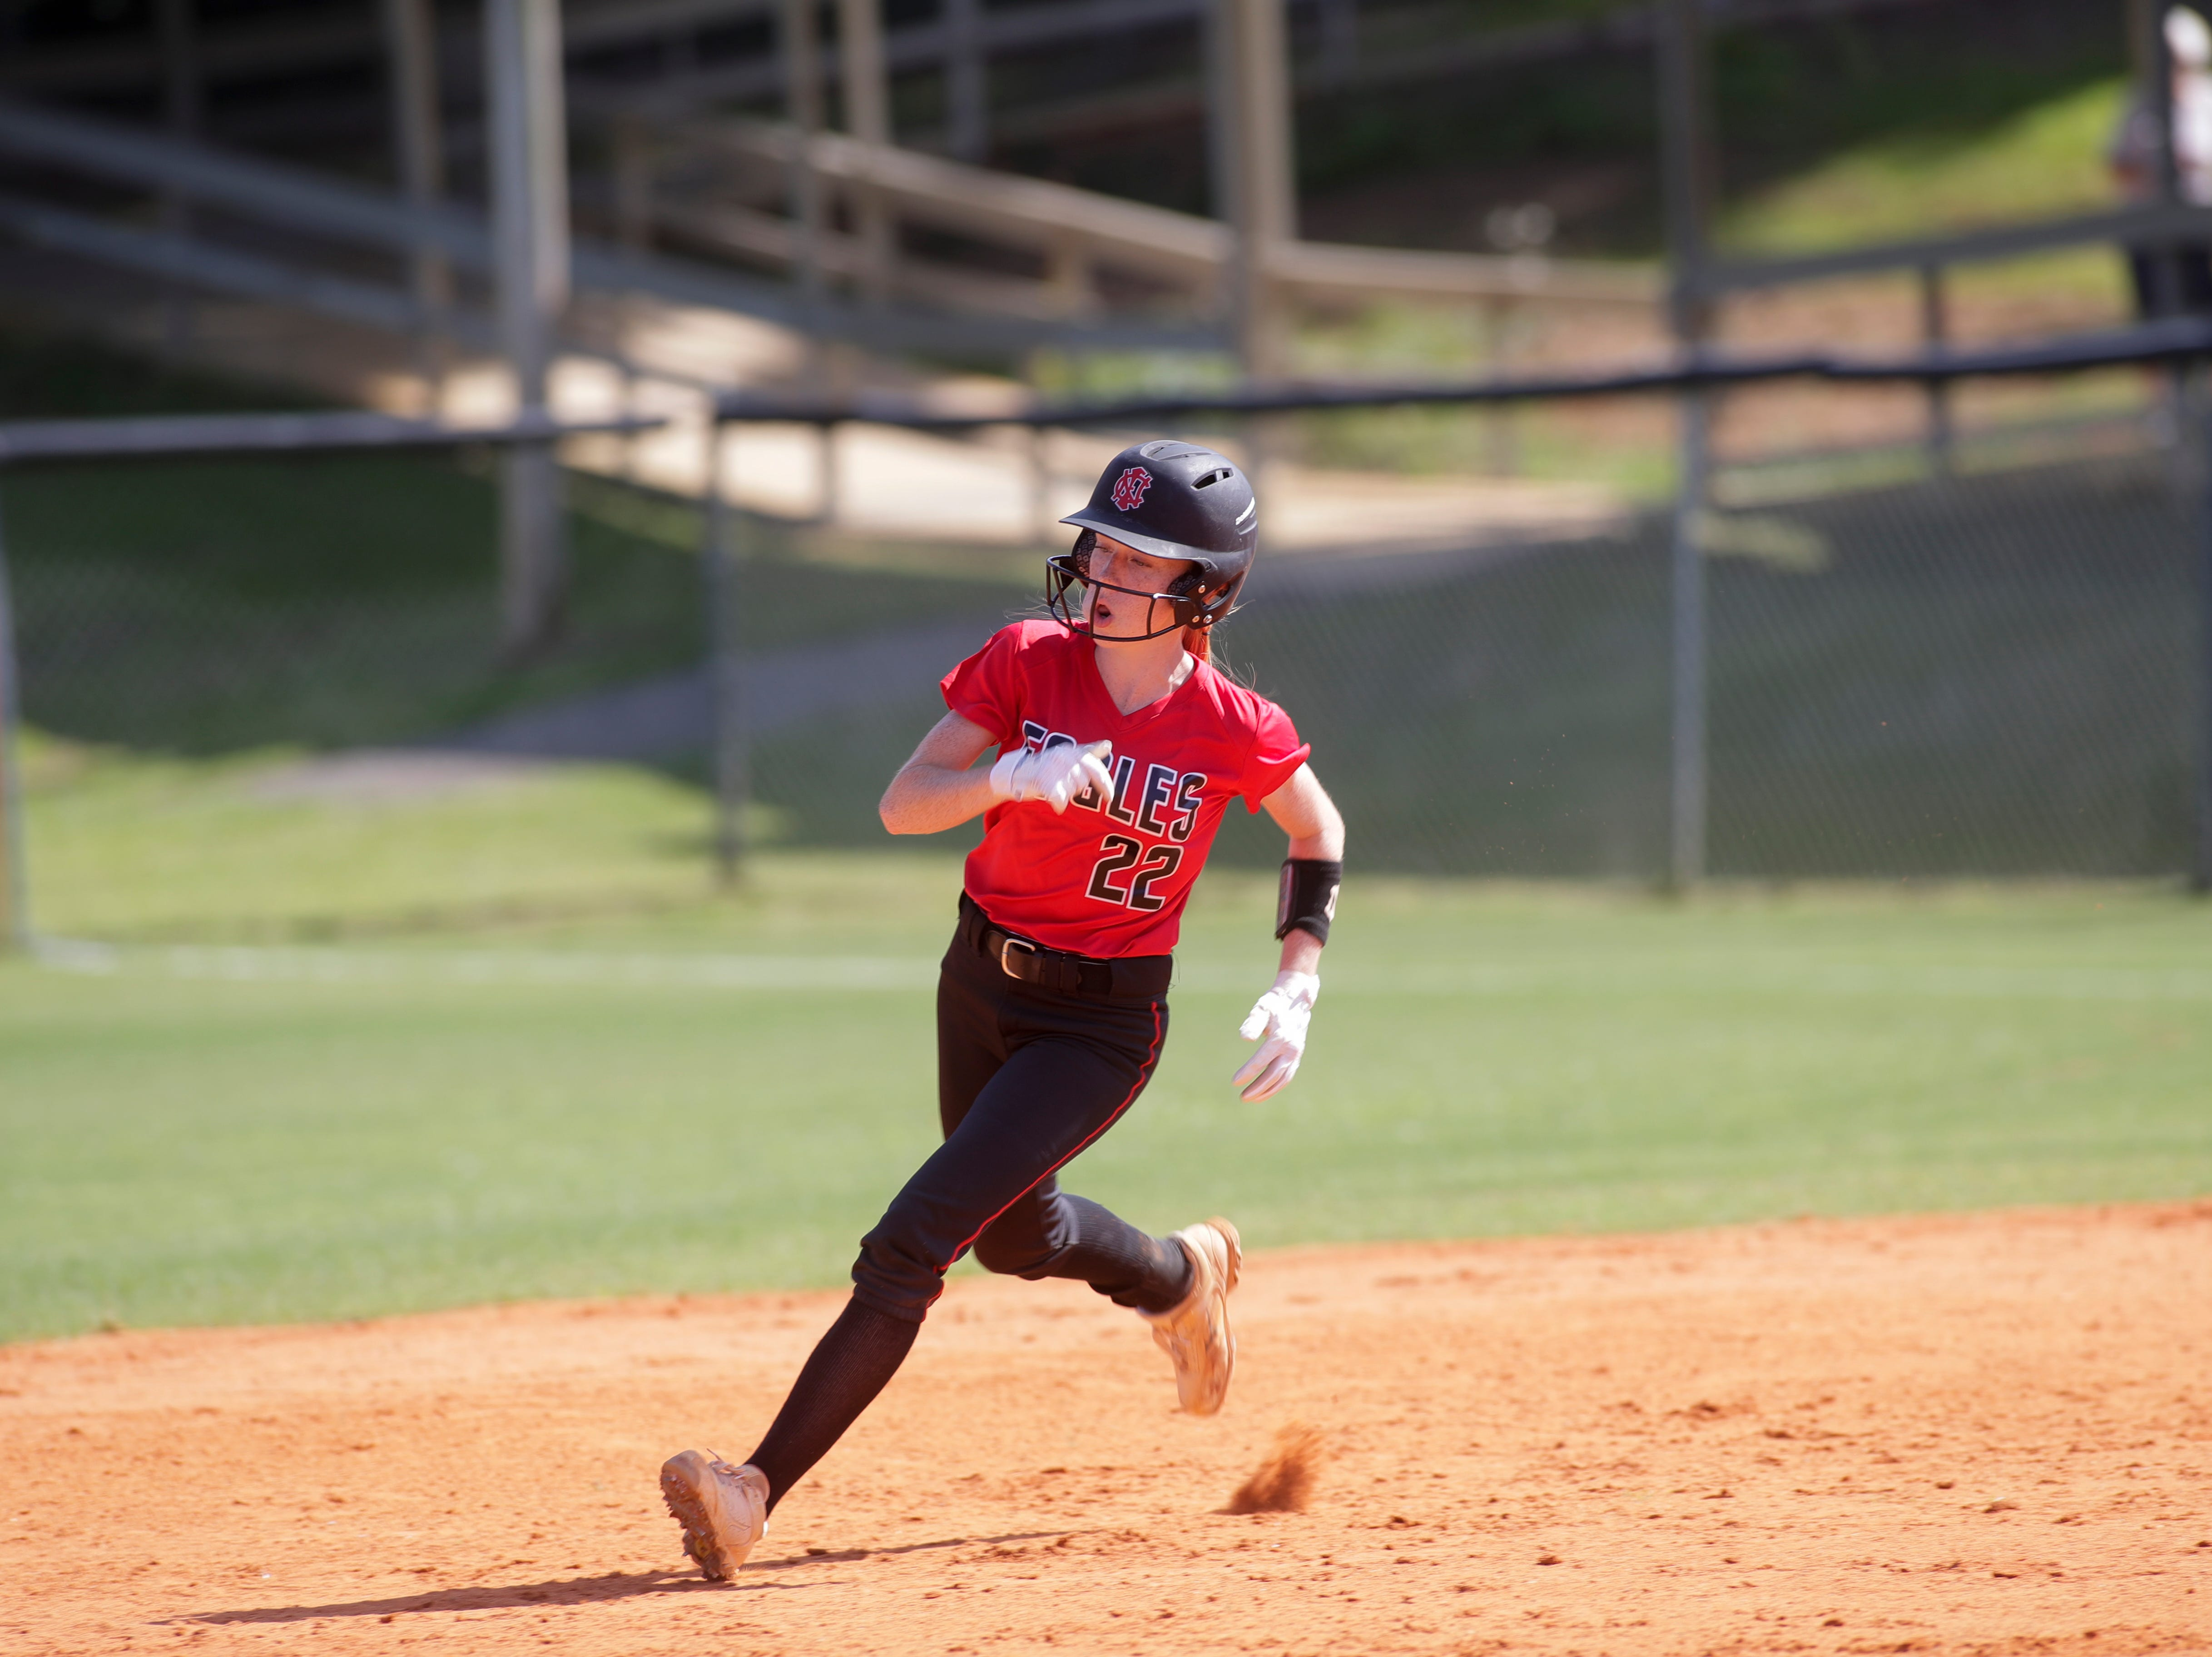 North Florida Christian's Maddie Mayo (22) rounds second during the 1-3A regional final game between NFC and University Christian at NFC Tuesday, May 14, 2019. UC defeated NFC 16 to 11 to advance to the state tournament.